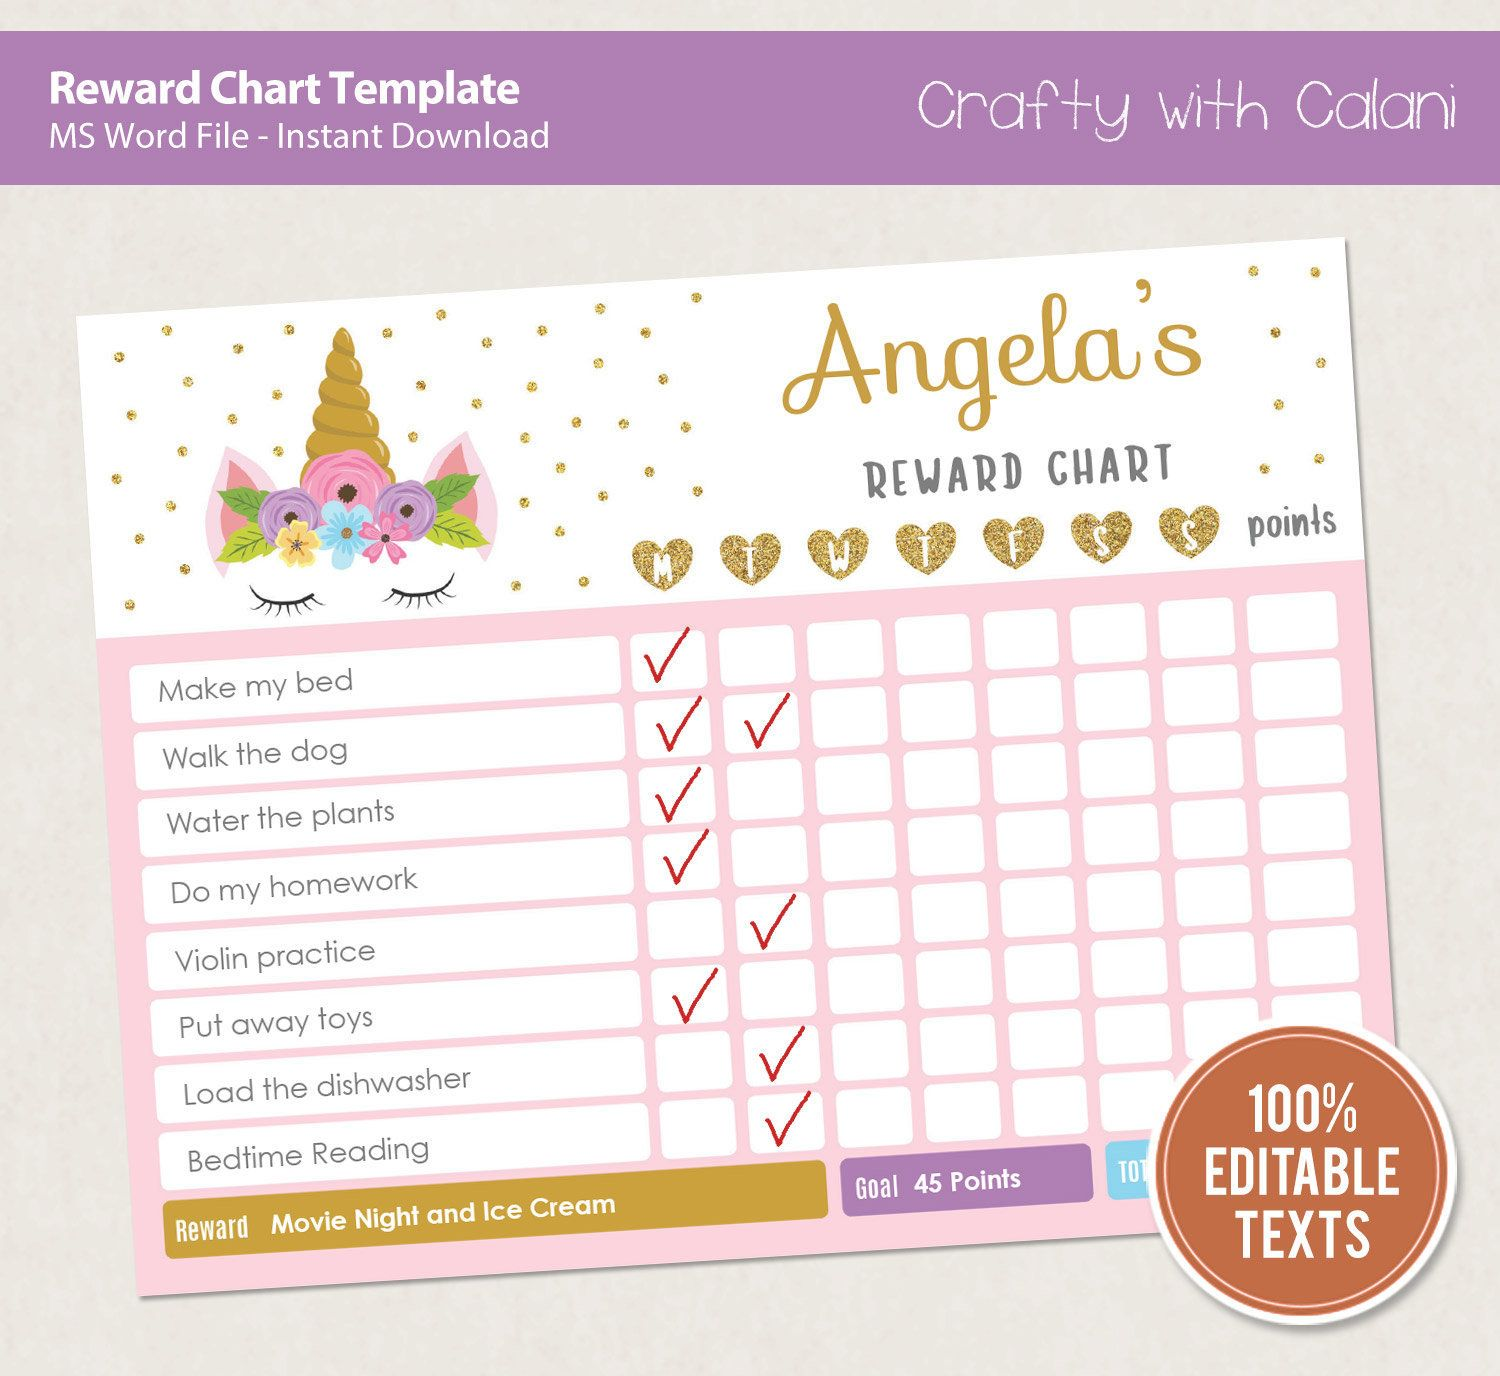 Reward Chart Template Editable Unicorn Reward Chart Chore Chart Printable Behavior Chart Kid Routi Reward Chart Template Reward Chart Printable Chore Chart